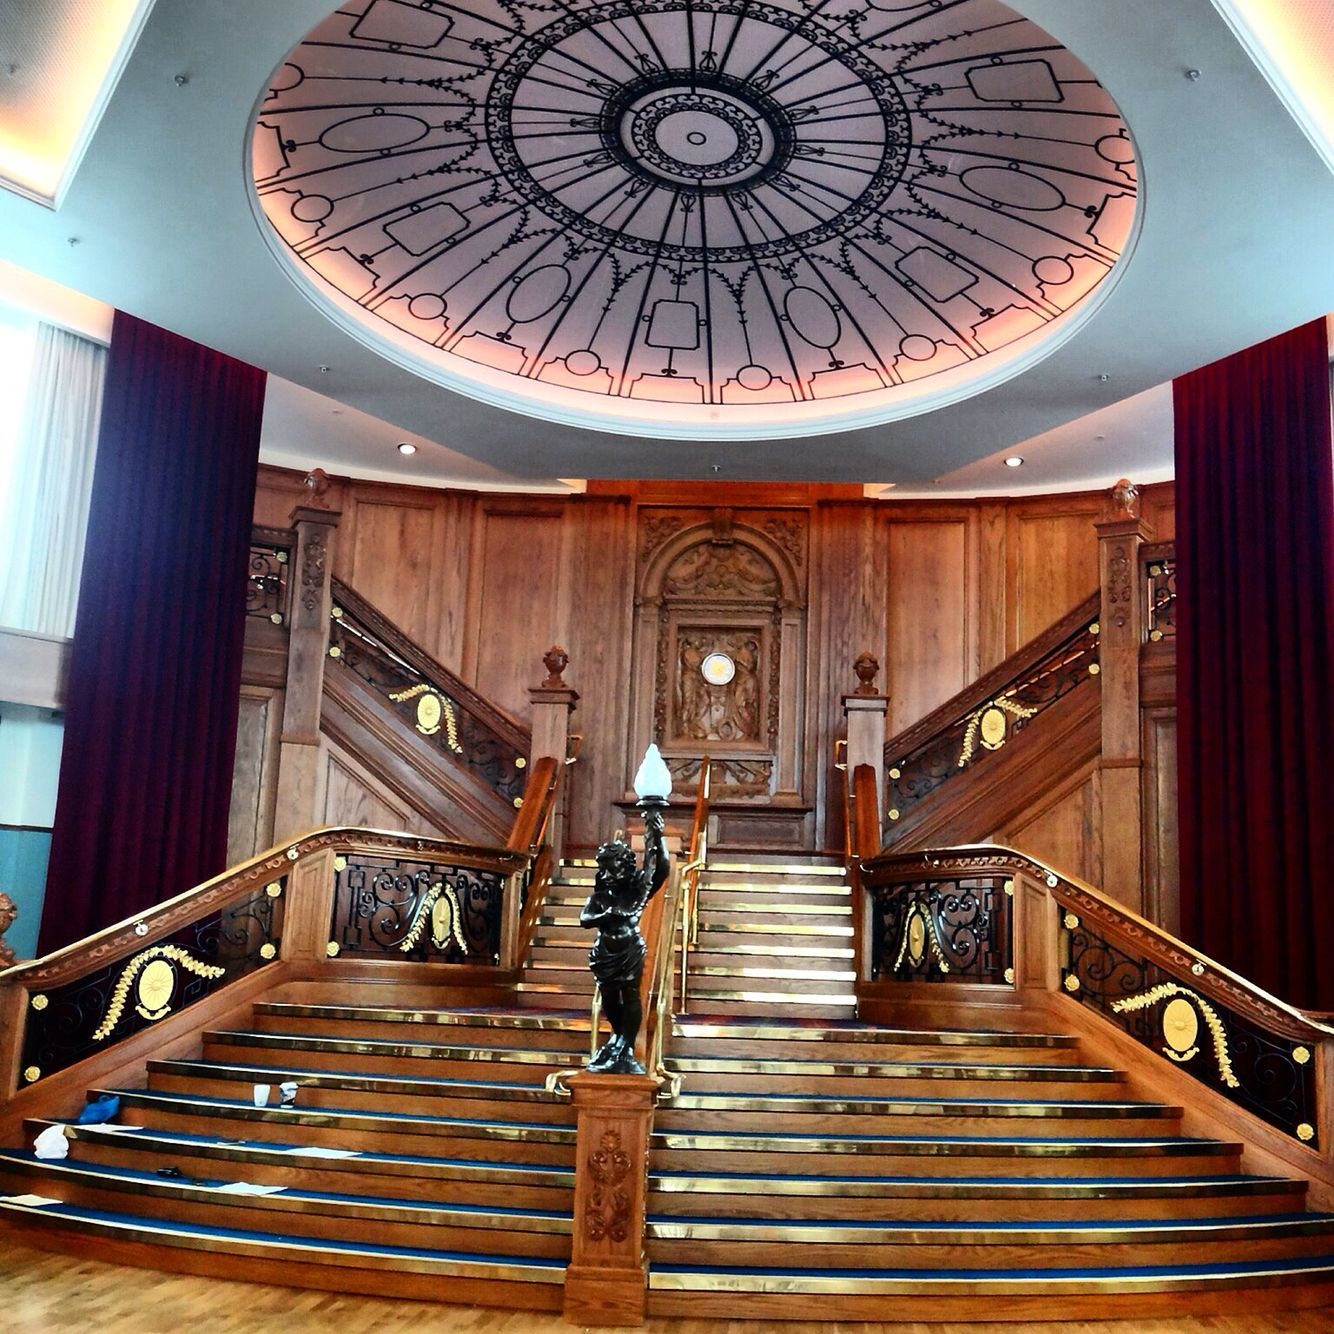 Titanic Belfast Has A Replica Of The Famous Staircase Of The Titanic Movie Read More About This Museum In Ireland Honeymoon Belfast Ireland Ireland Road Trip